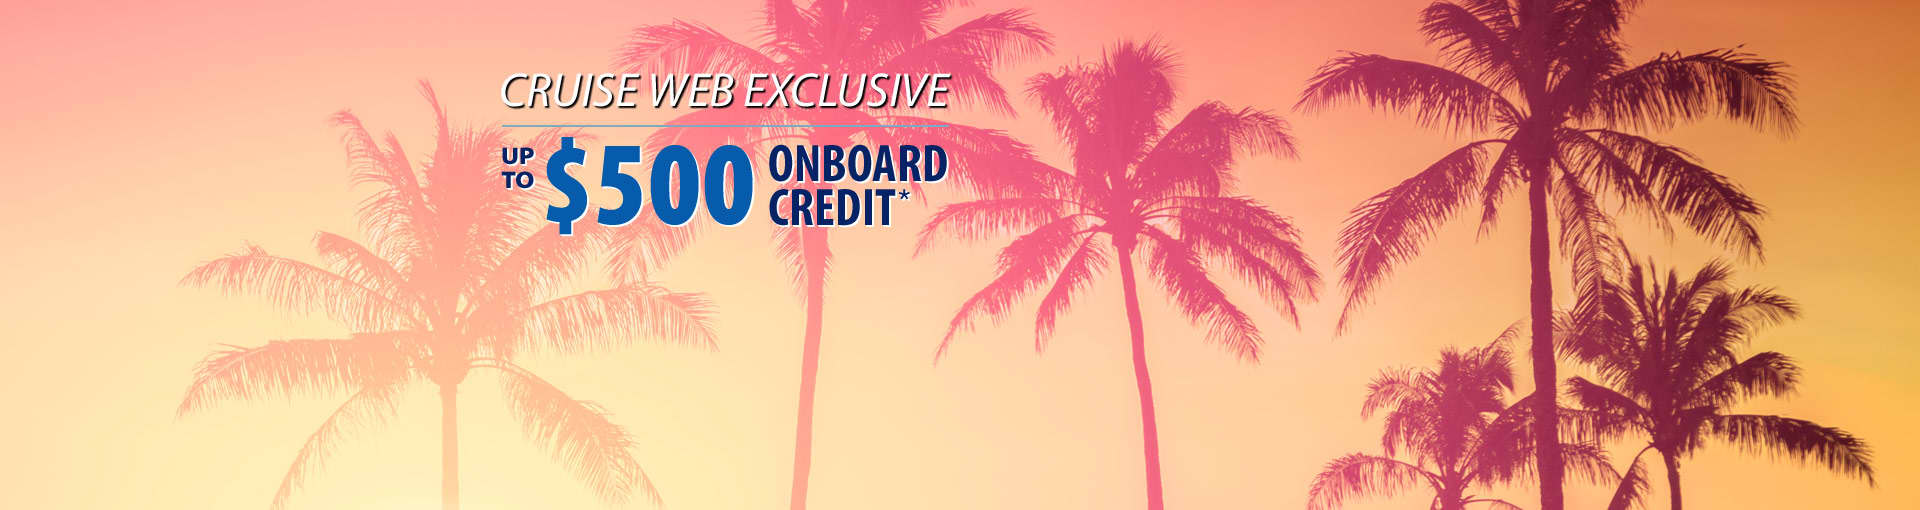 Up to $500 Onboard Credit from The Cruise Web